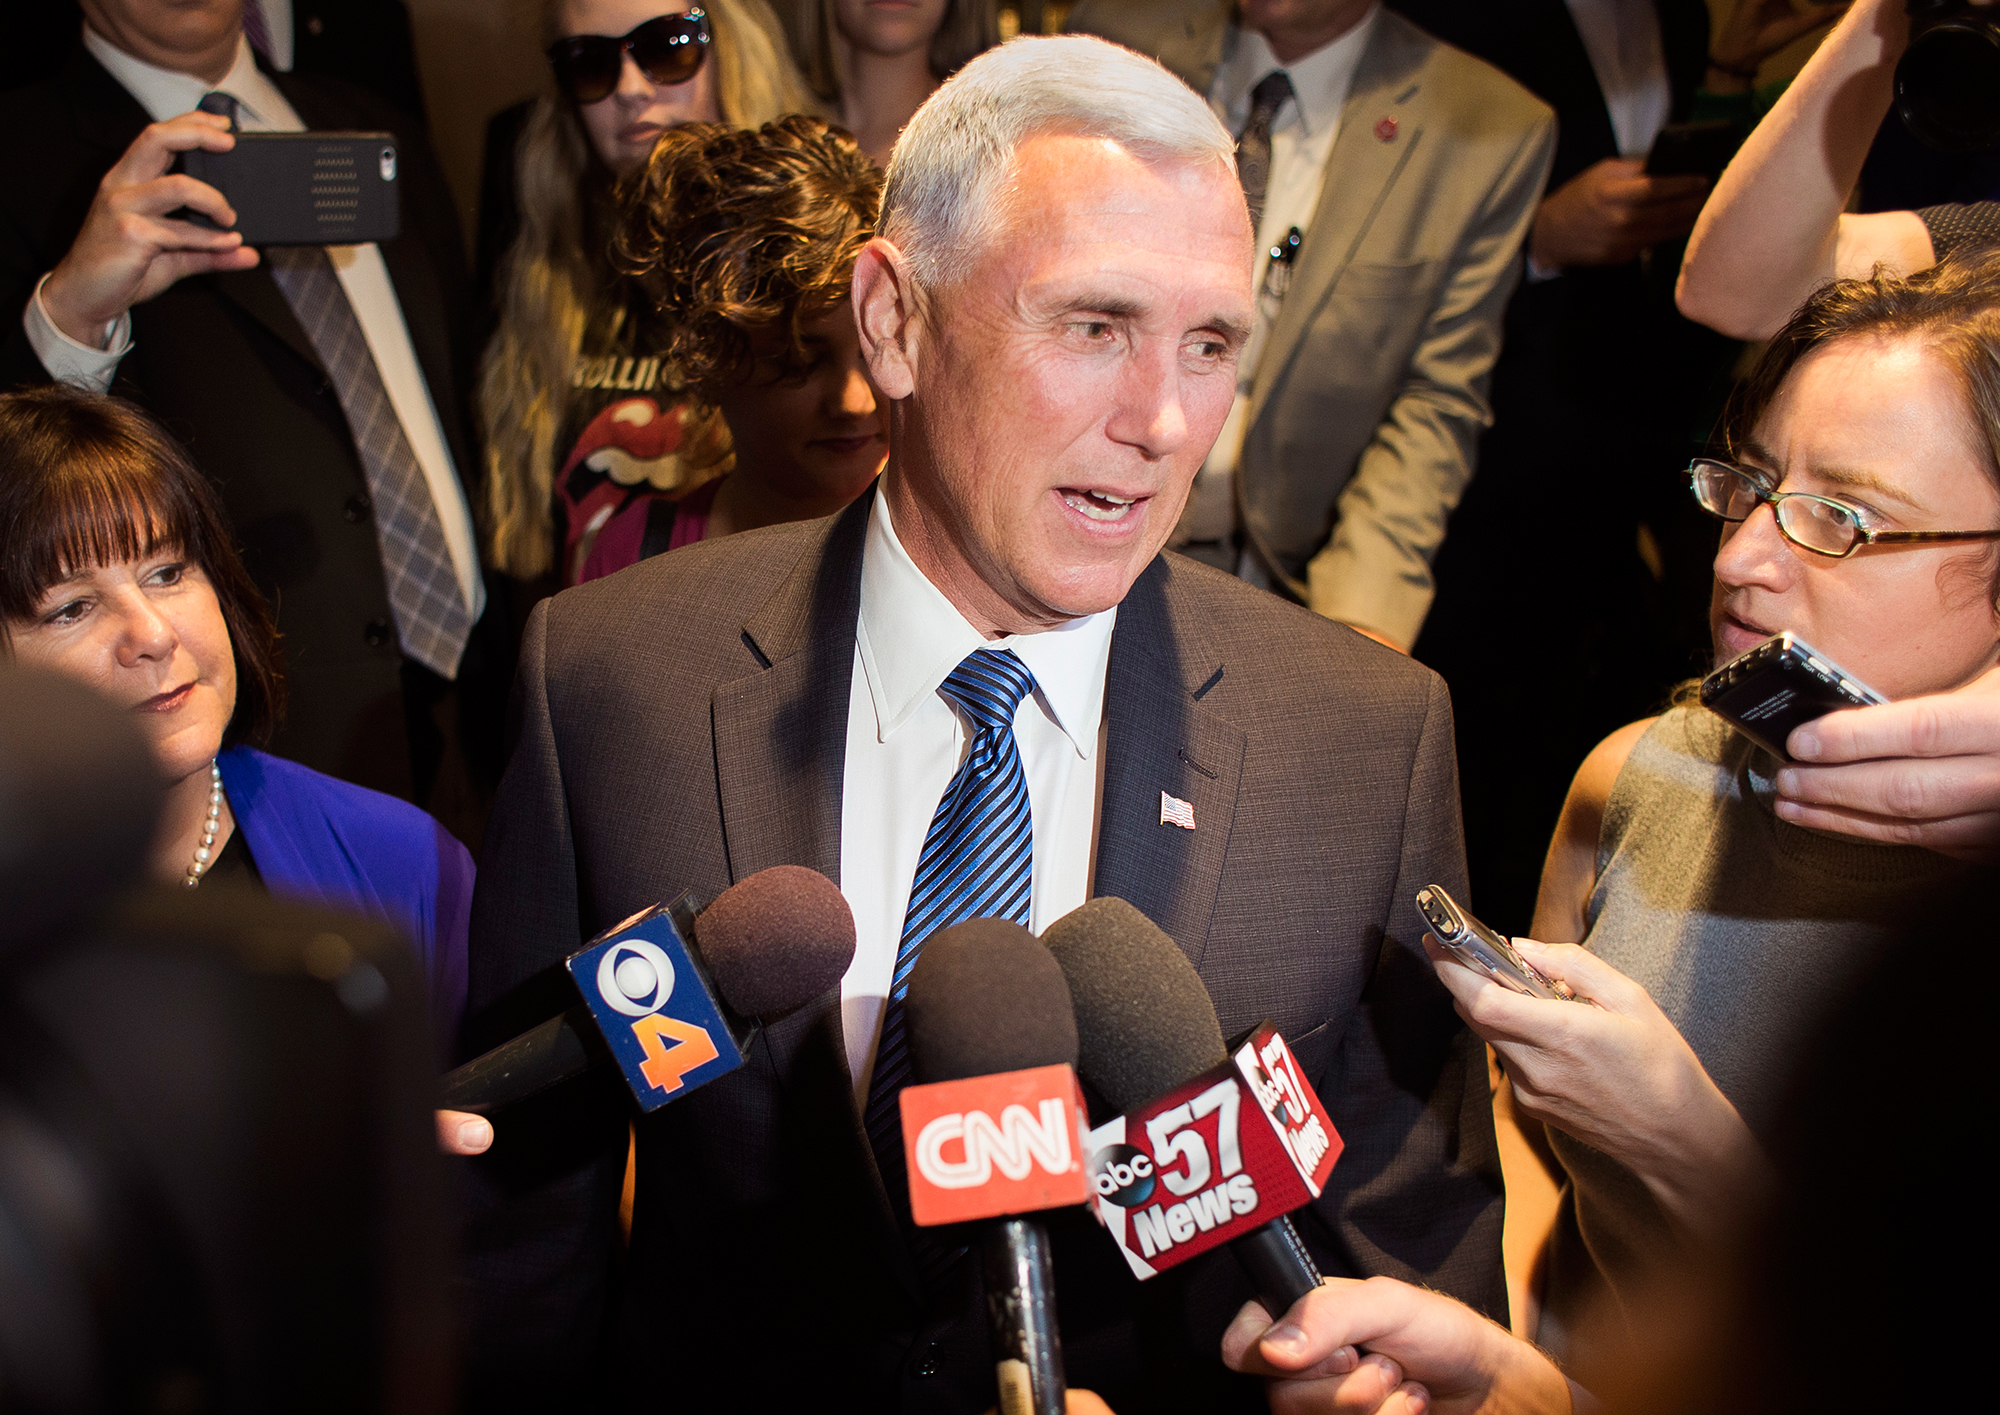 As Indiana Governor, Mike Pence's Health Policy Has Been Contentious